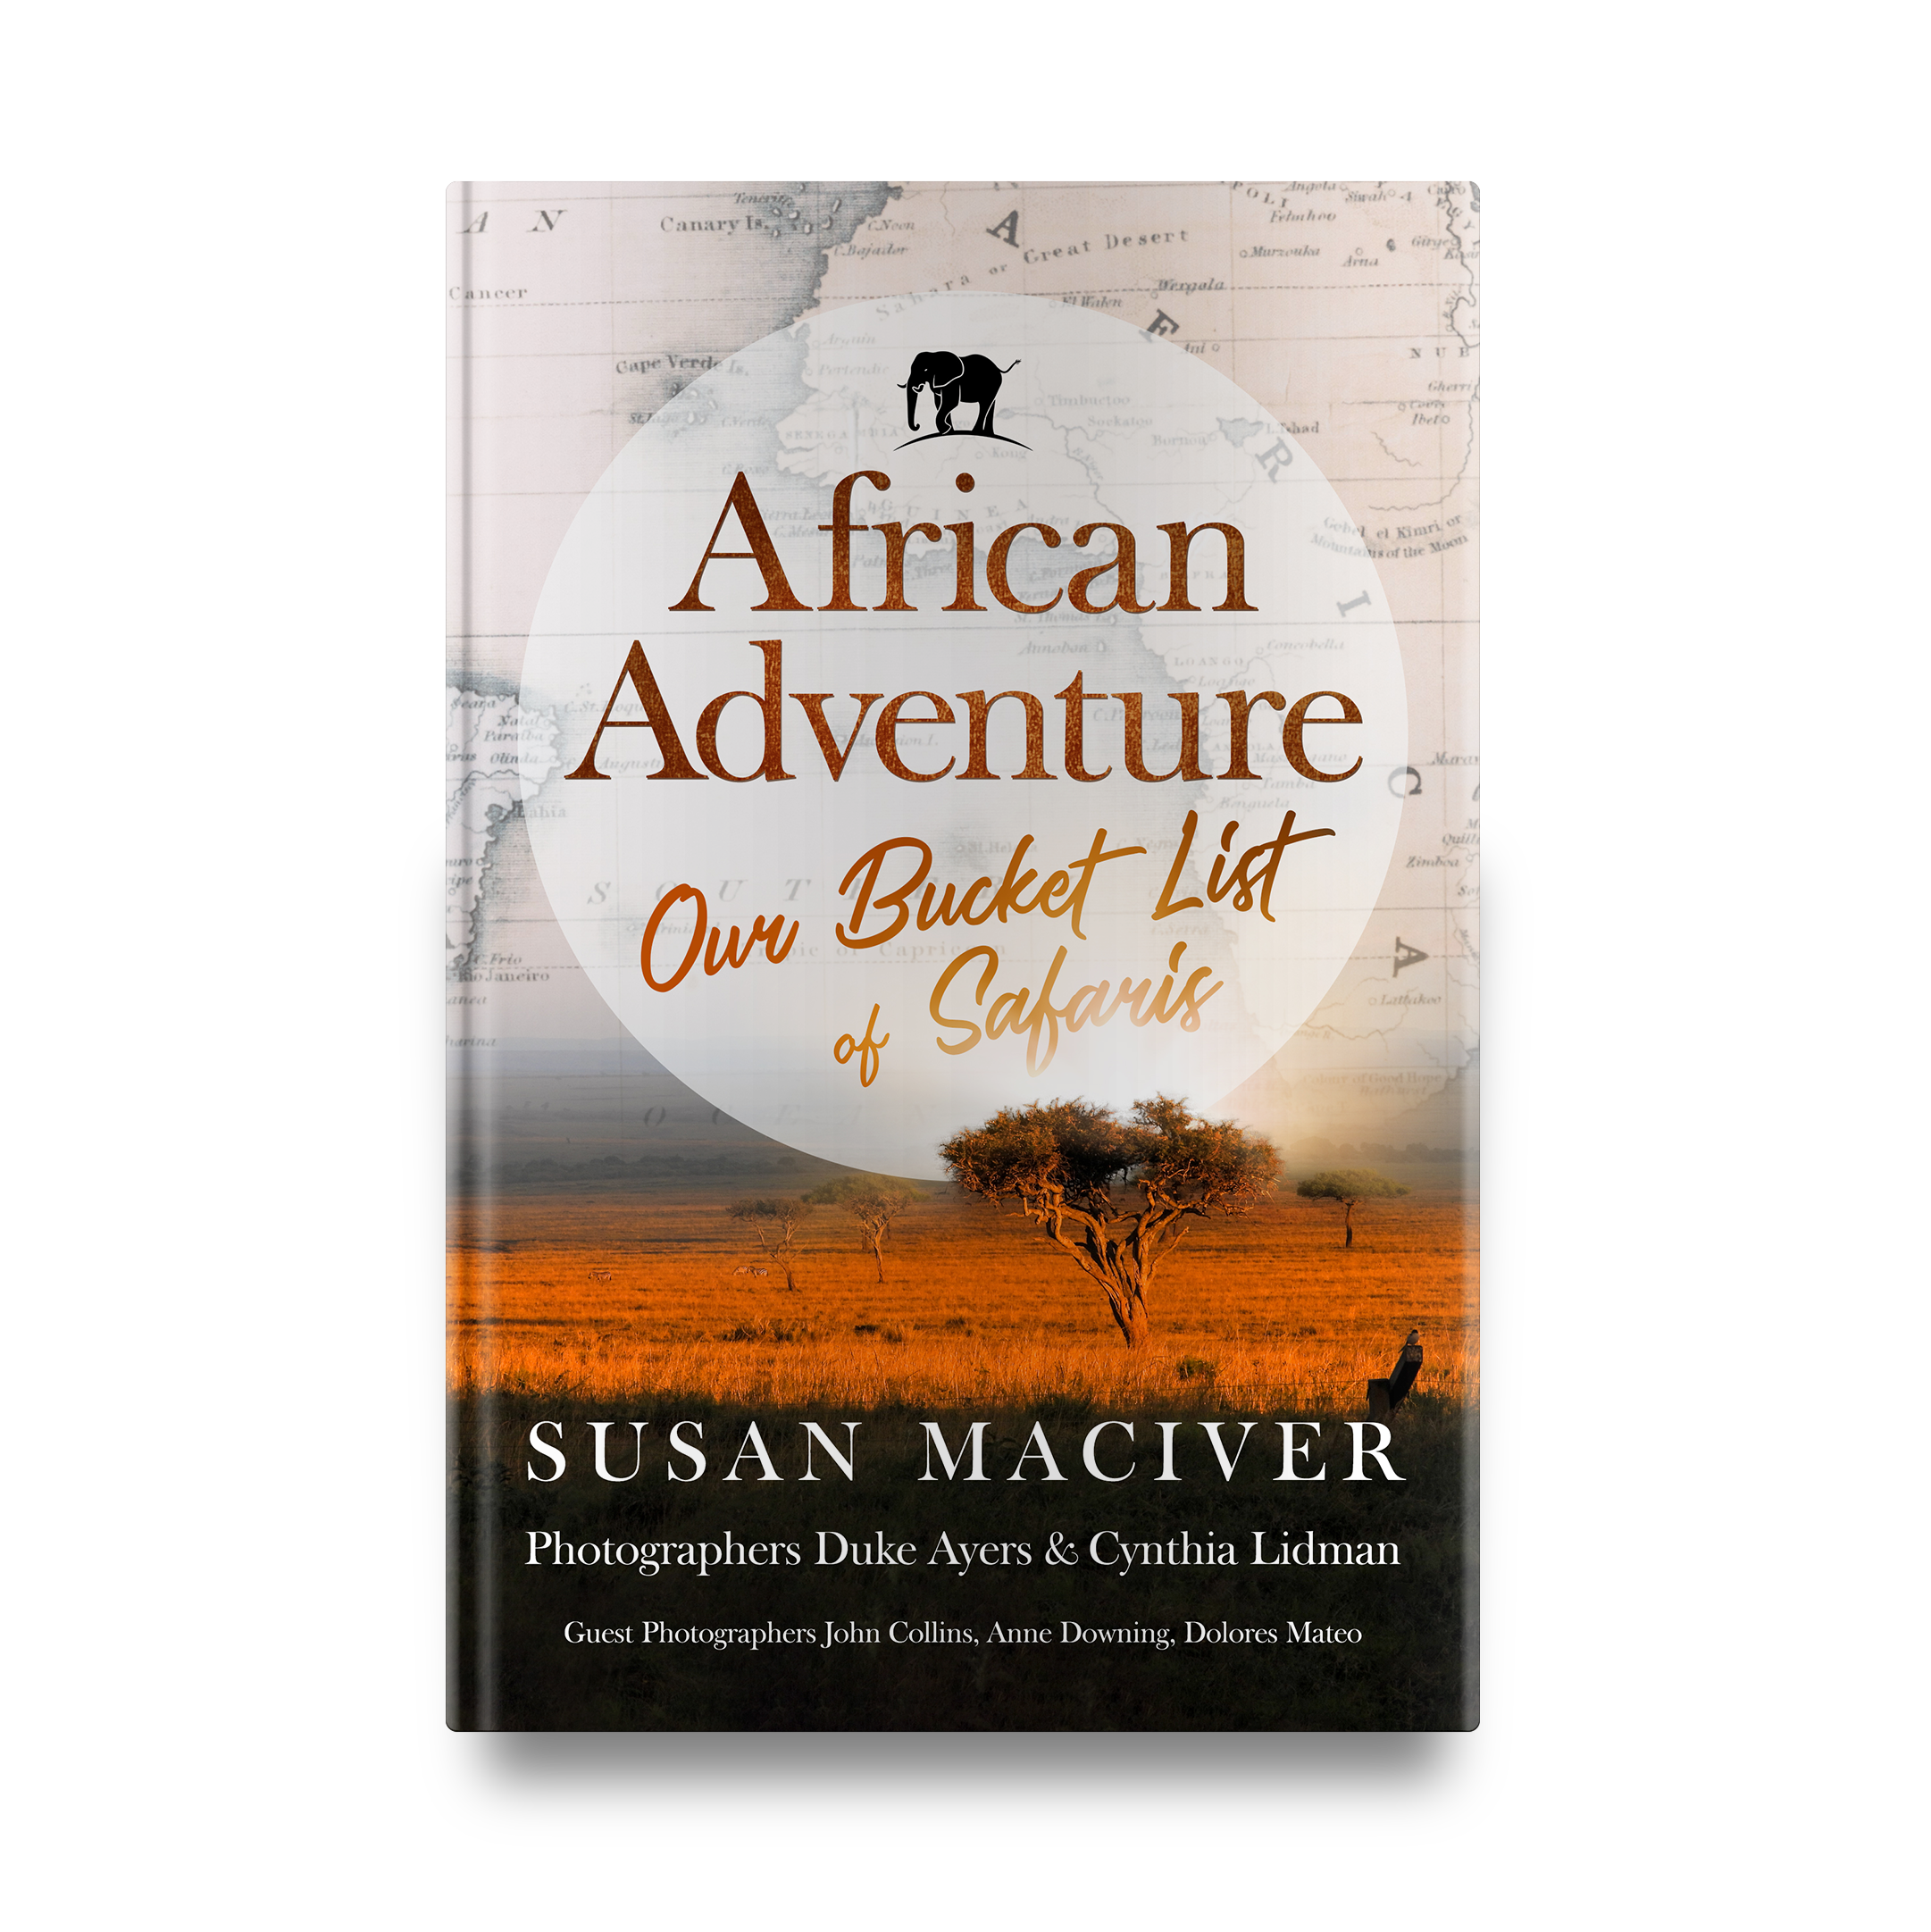 Susan MacIver's African Adventure: Our Bucket List of Safaris || Designed by TheThatchery.com